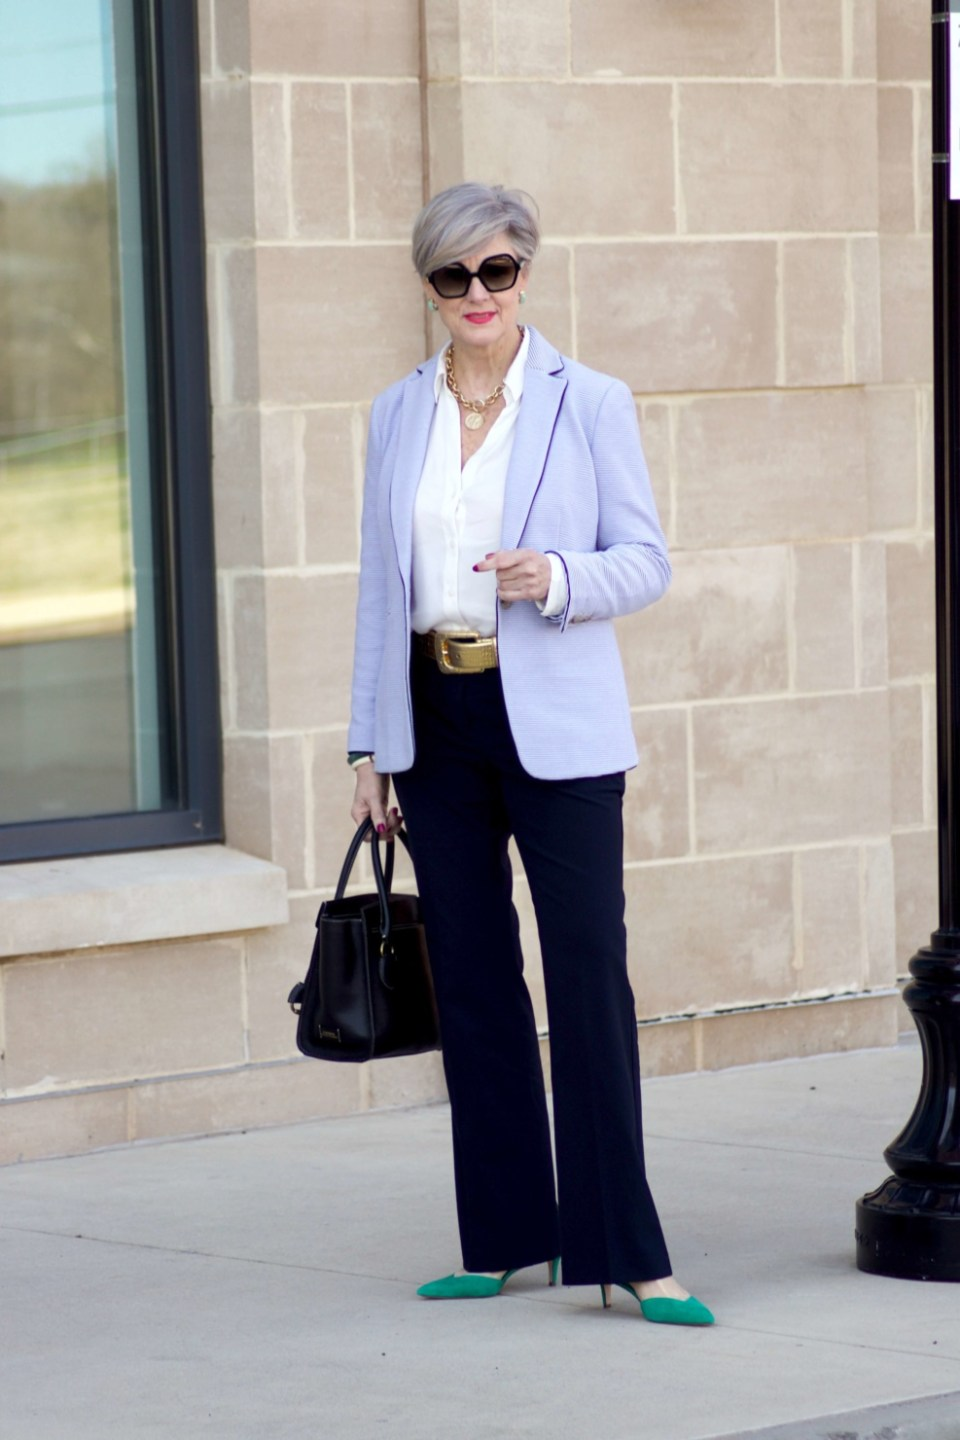 beth from Style at a Certain Age wears a Ann Taylor green trench coat, navy trousers, white essential shirt, knit striped blazer, and green suede pumps.